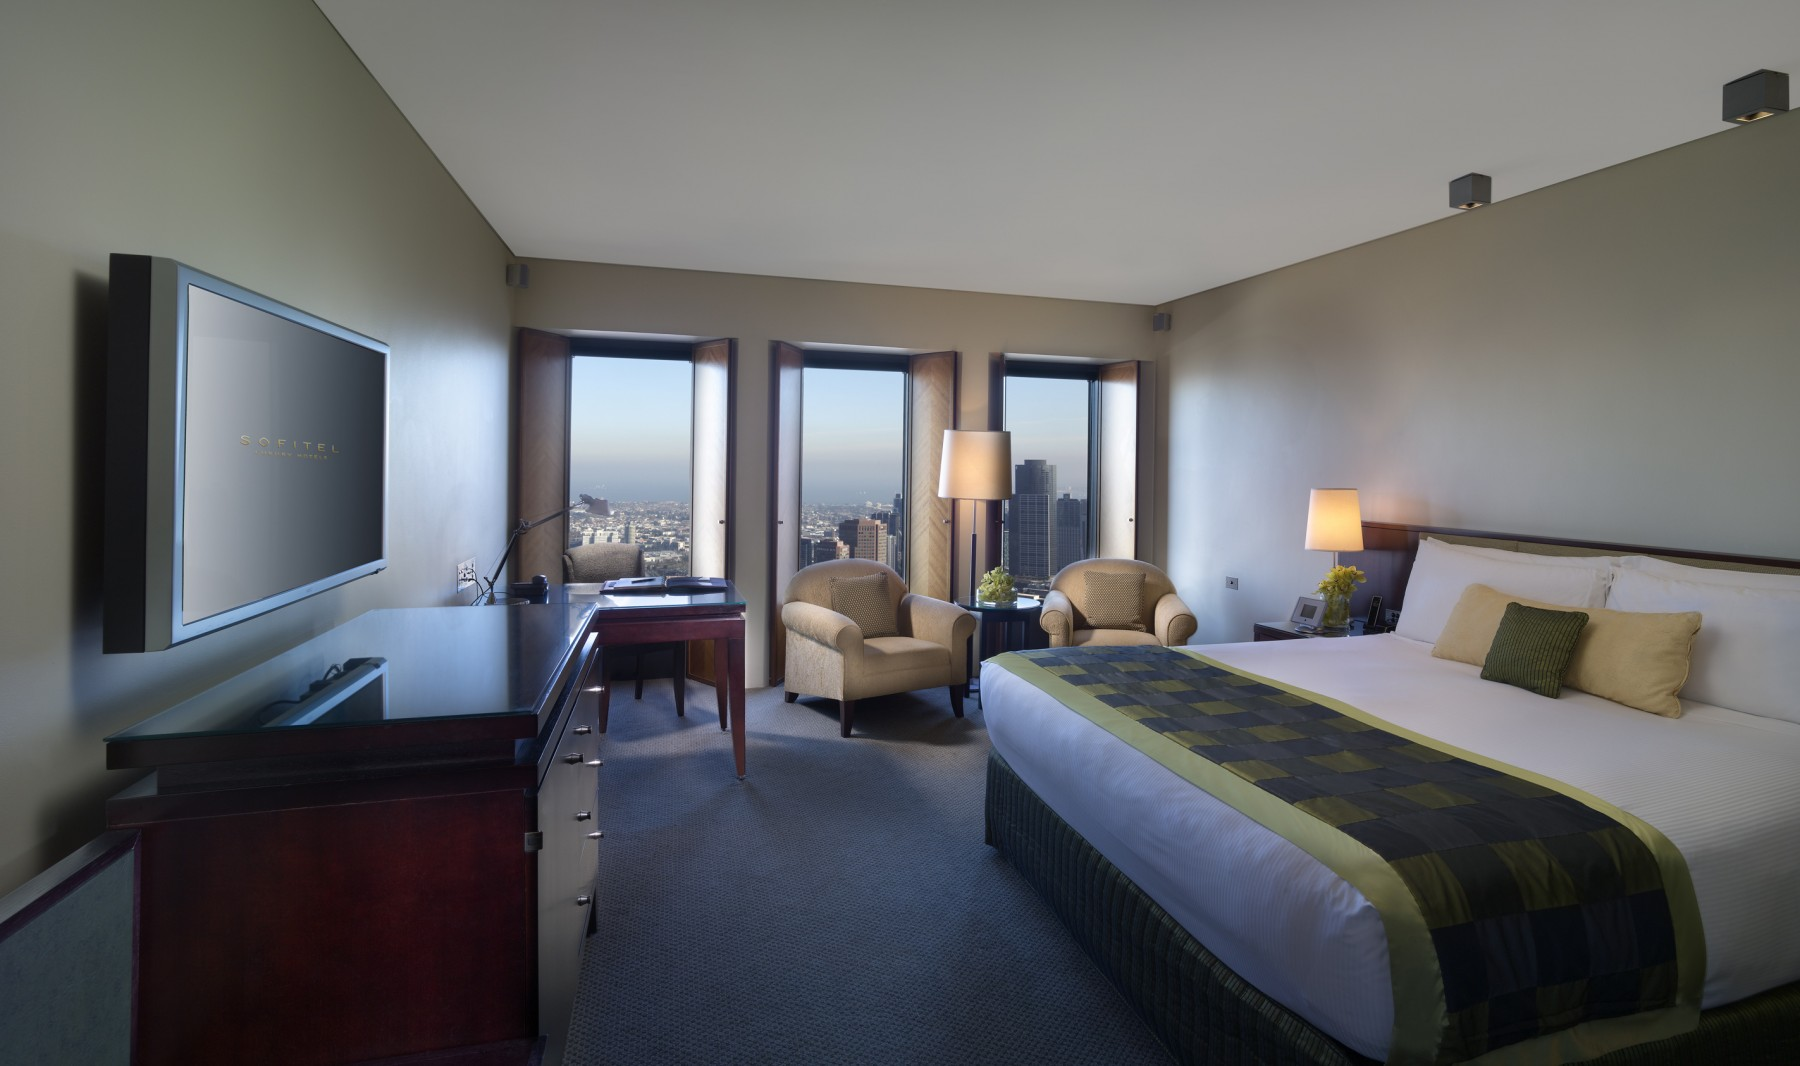 Classic King Room - Room Only - $280 per nightRoom & Breakfast for 1 - $315 per nightRoom & Breakfast for 2 - $350 per night